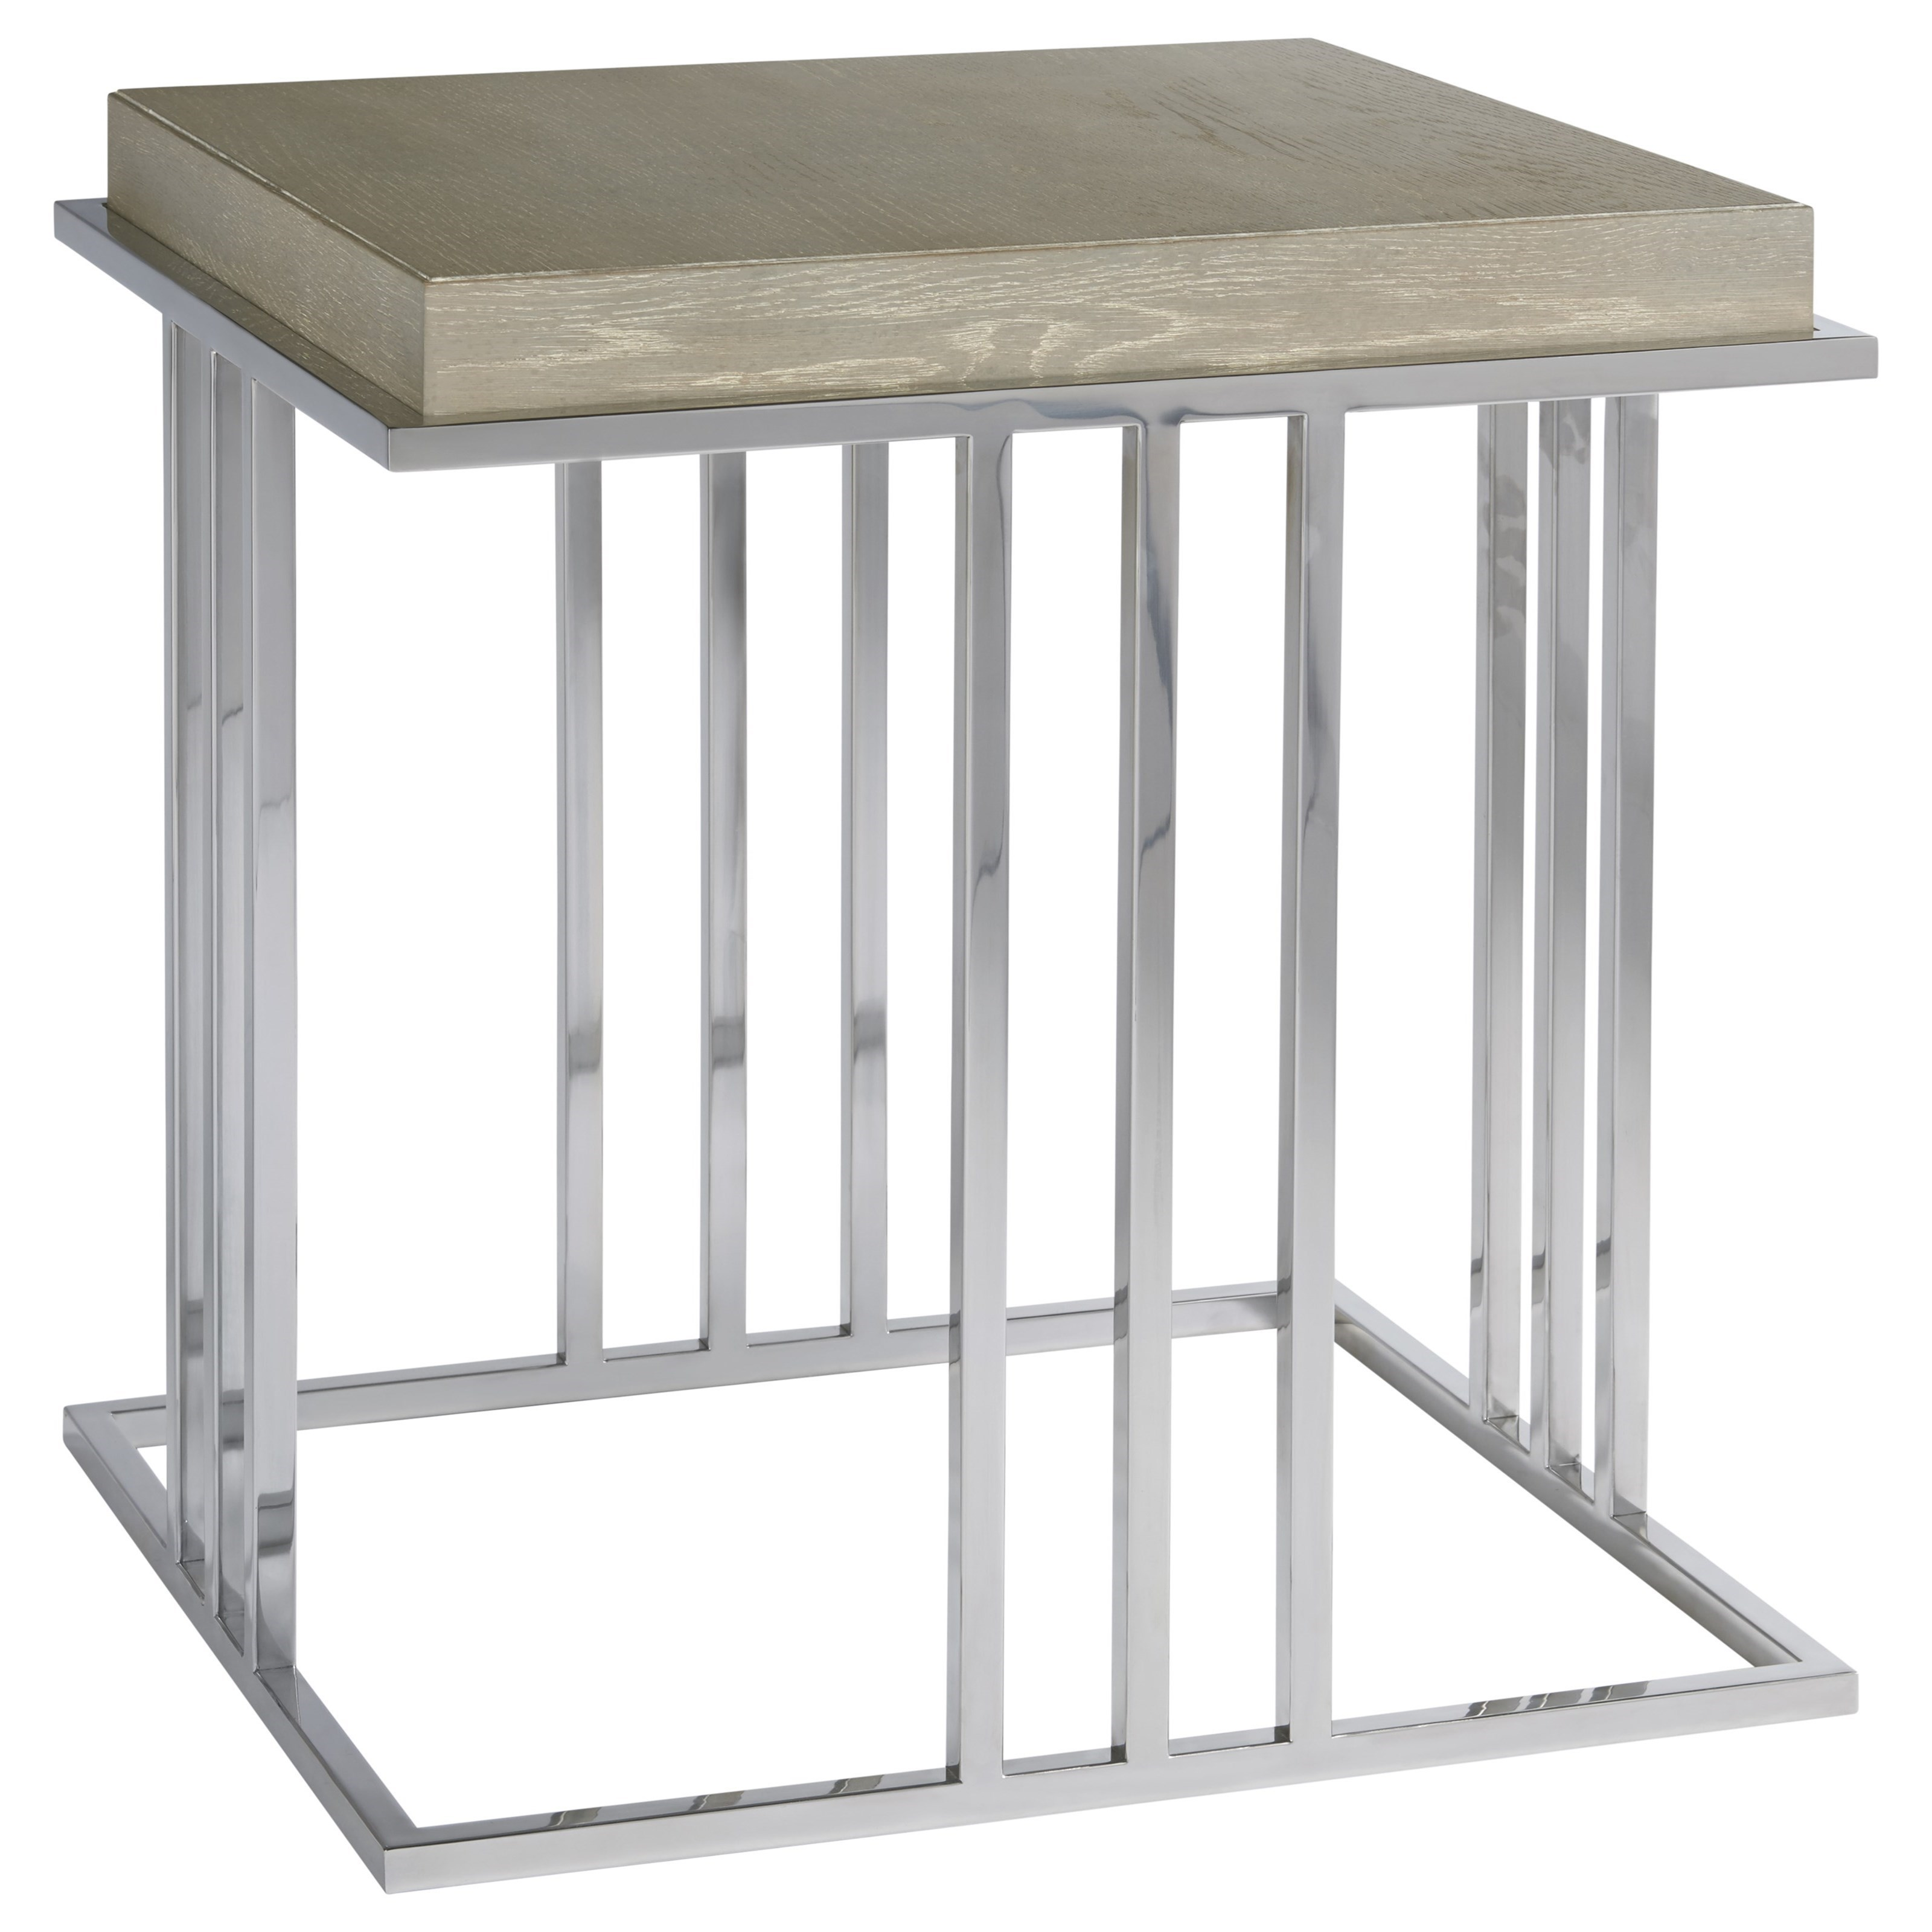 End Table with Stainless Steel Base